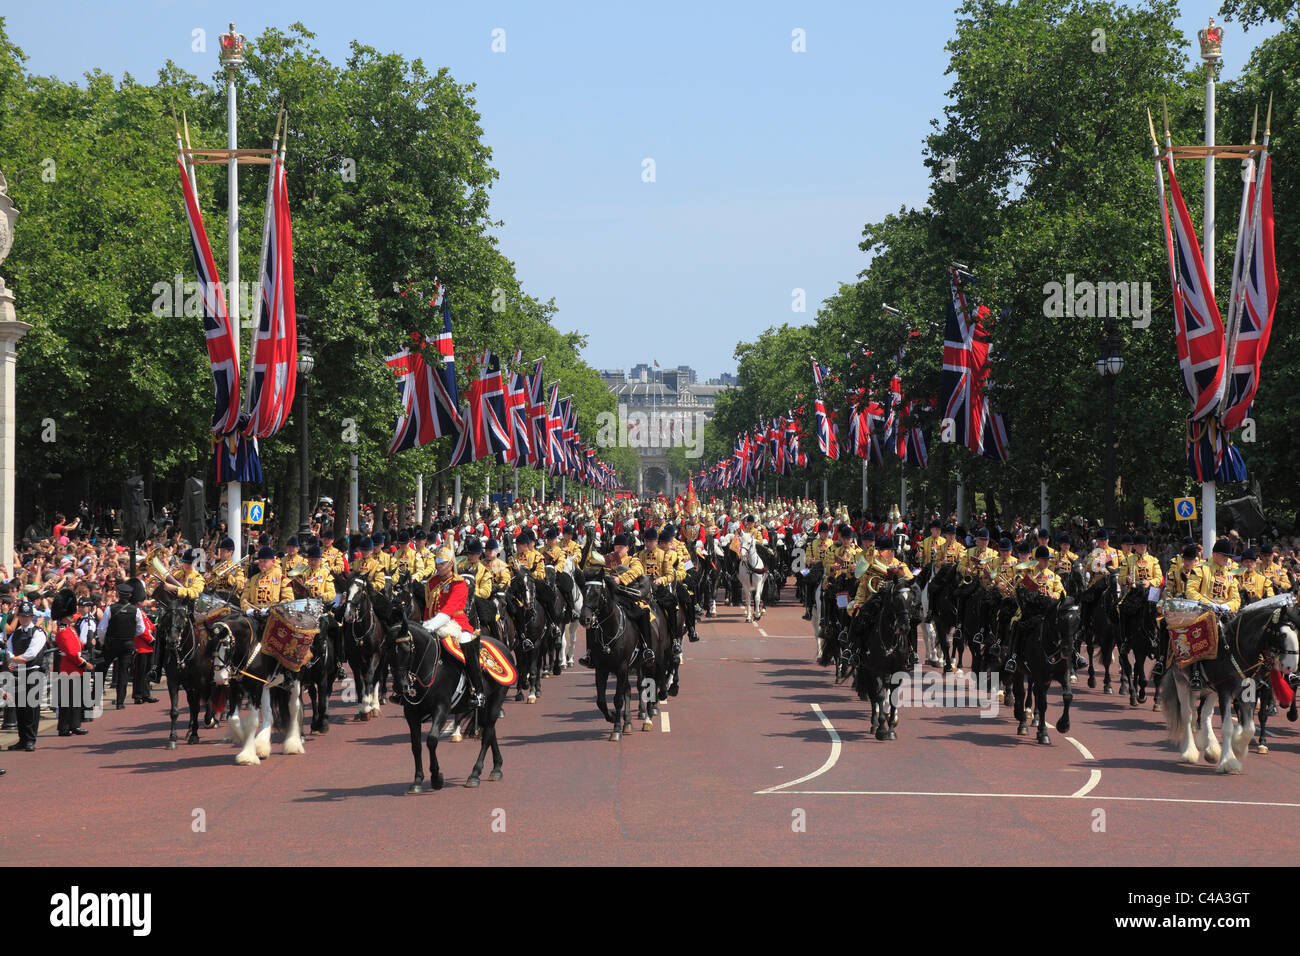 Mounted Cavalry in The Mall at the Trooping of the Colour Ceremony. - Stock Image